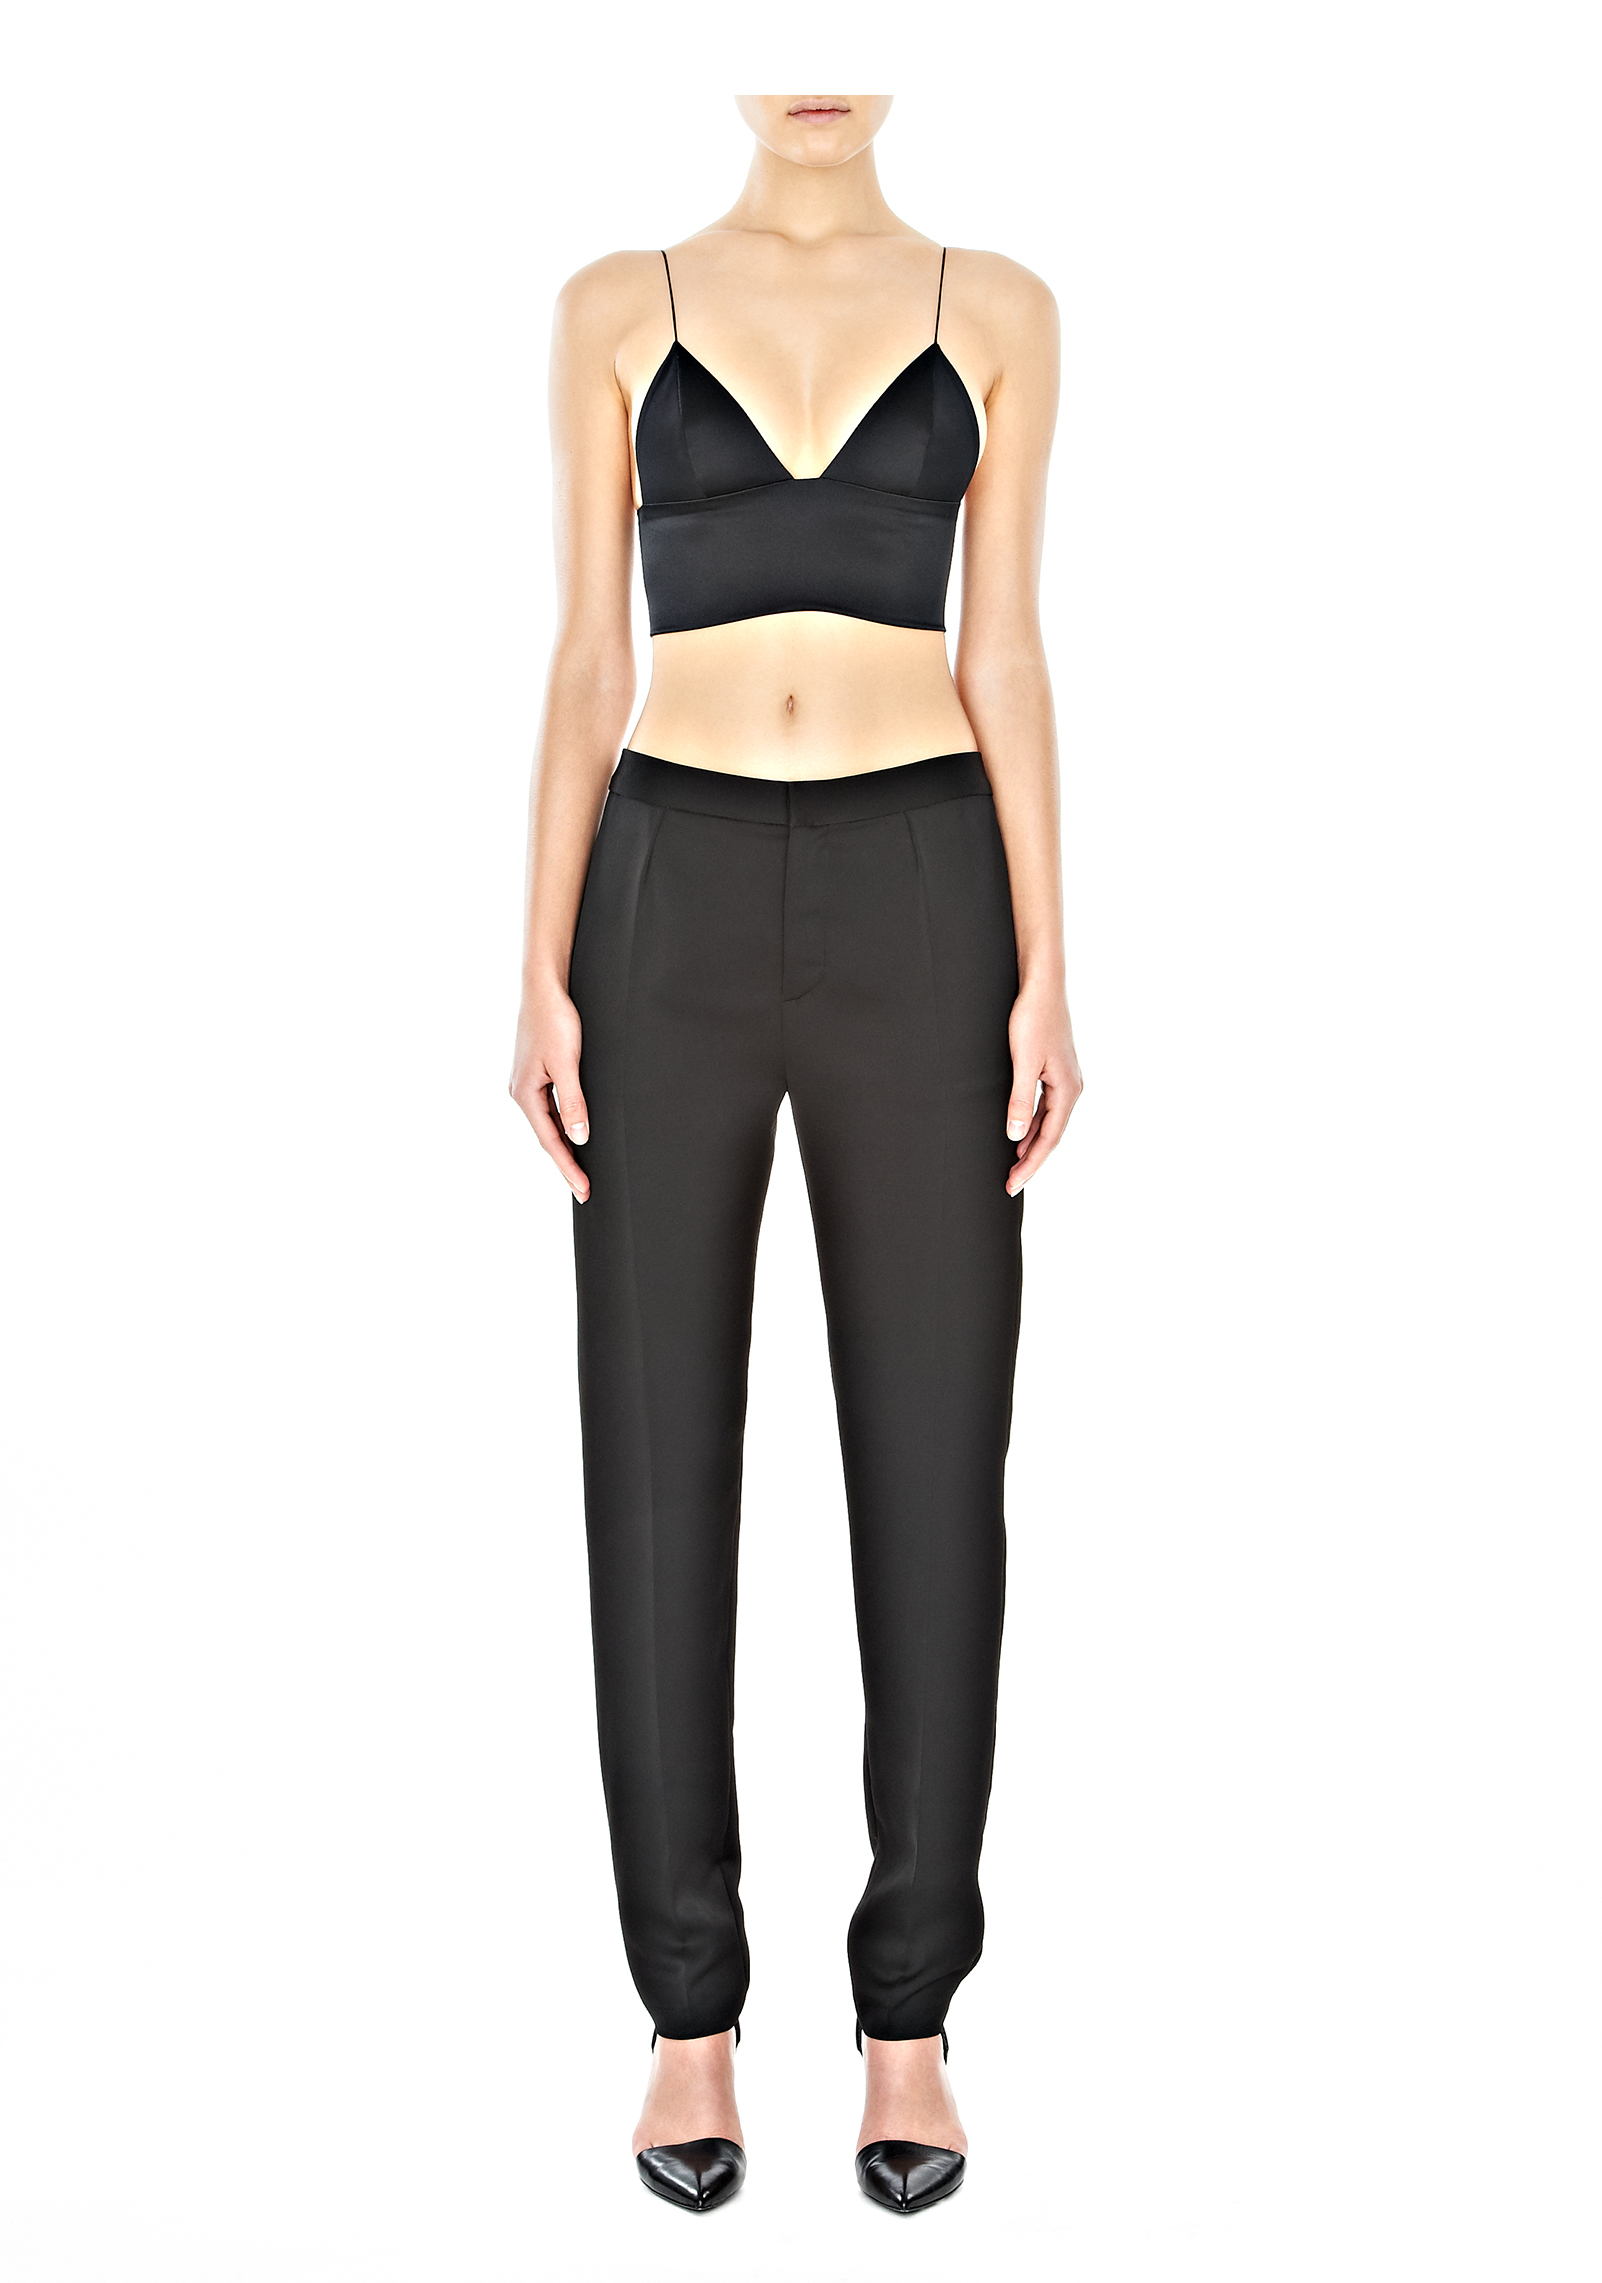 976636675f Lyst - Alexander Wang Silk Satin Triangle Bralette in Black